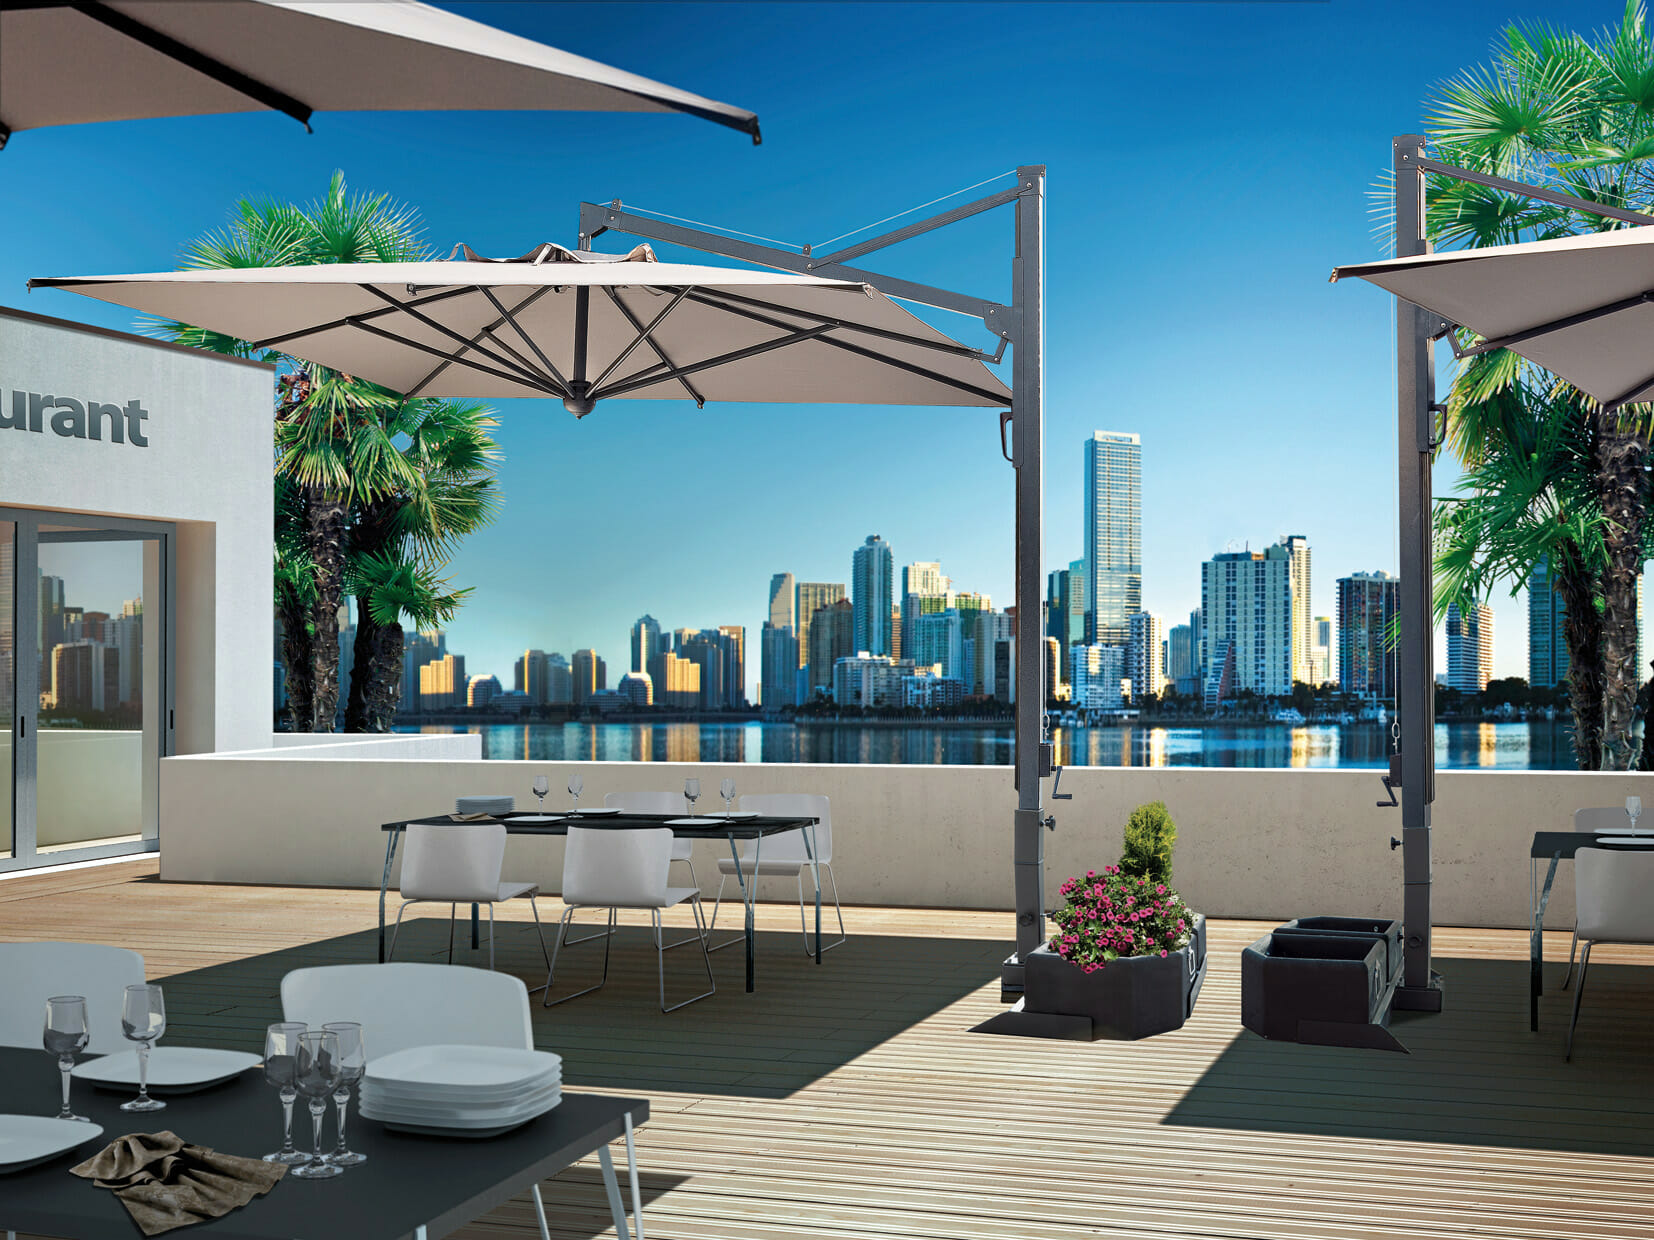 veneto umbrellas over outdoor dining area with a cityscape over the water in the background